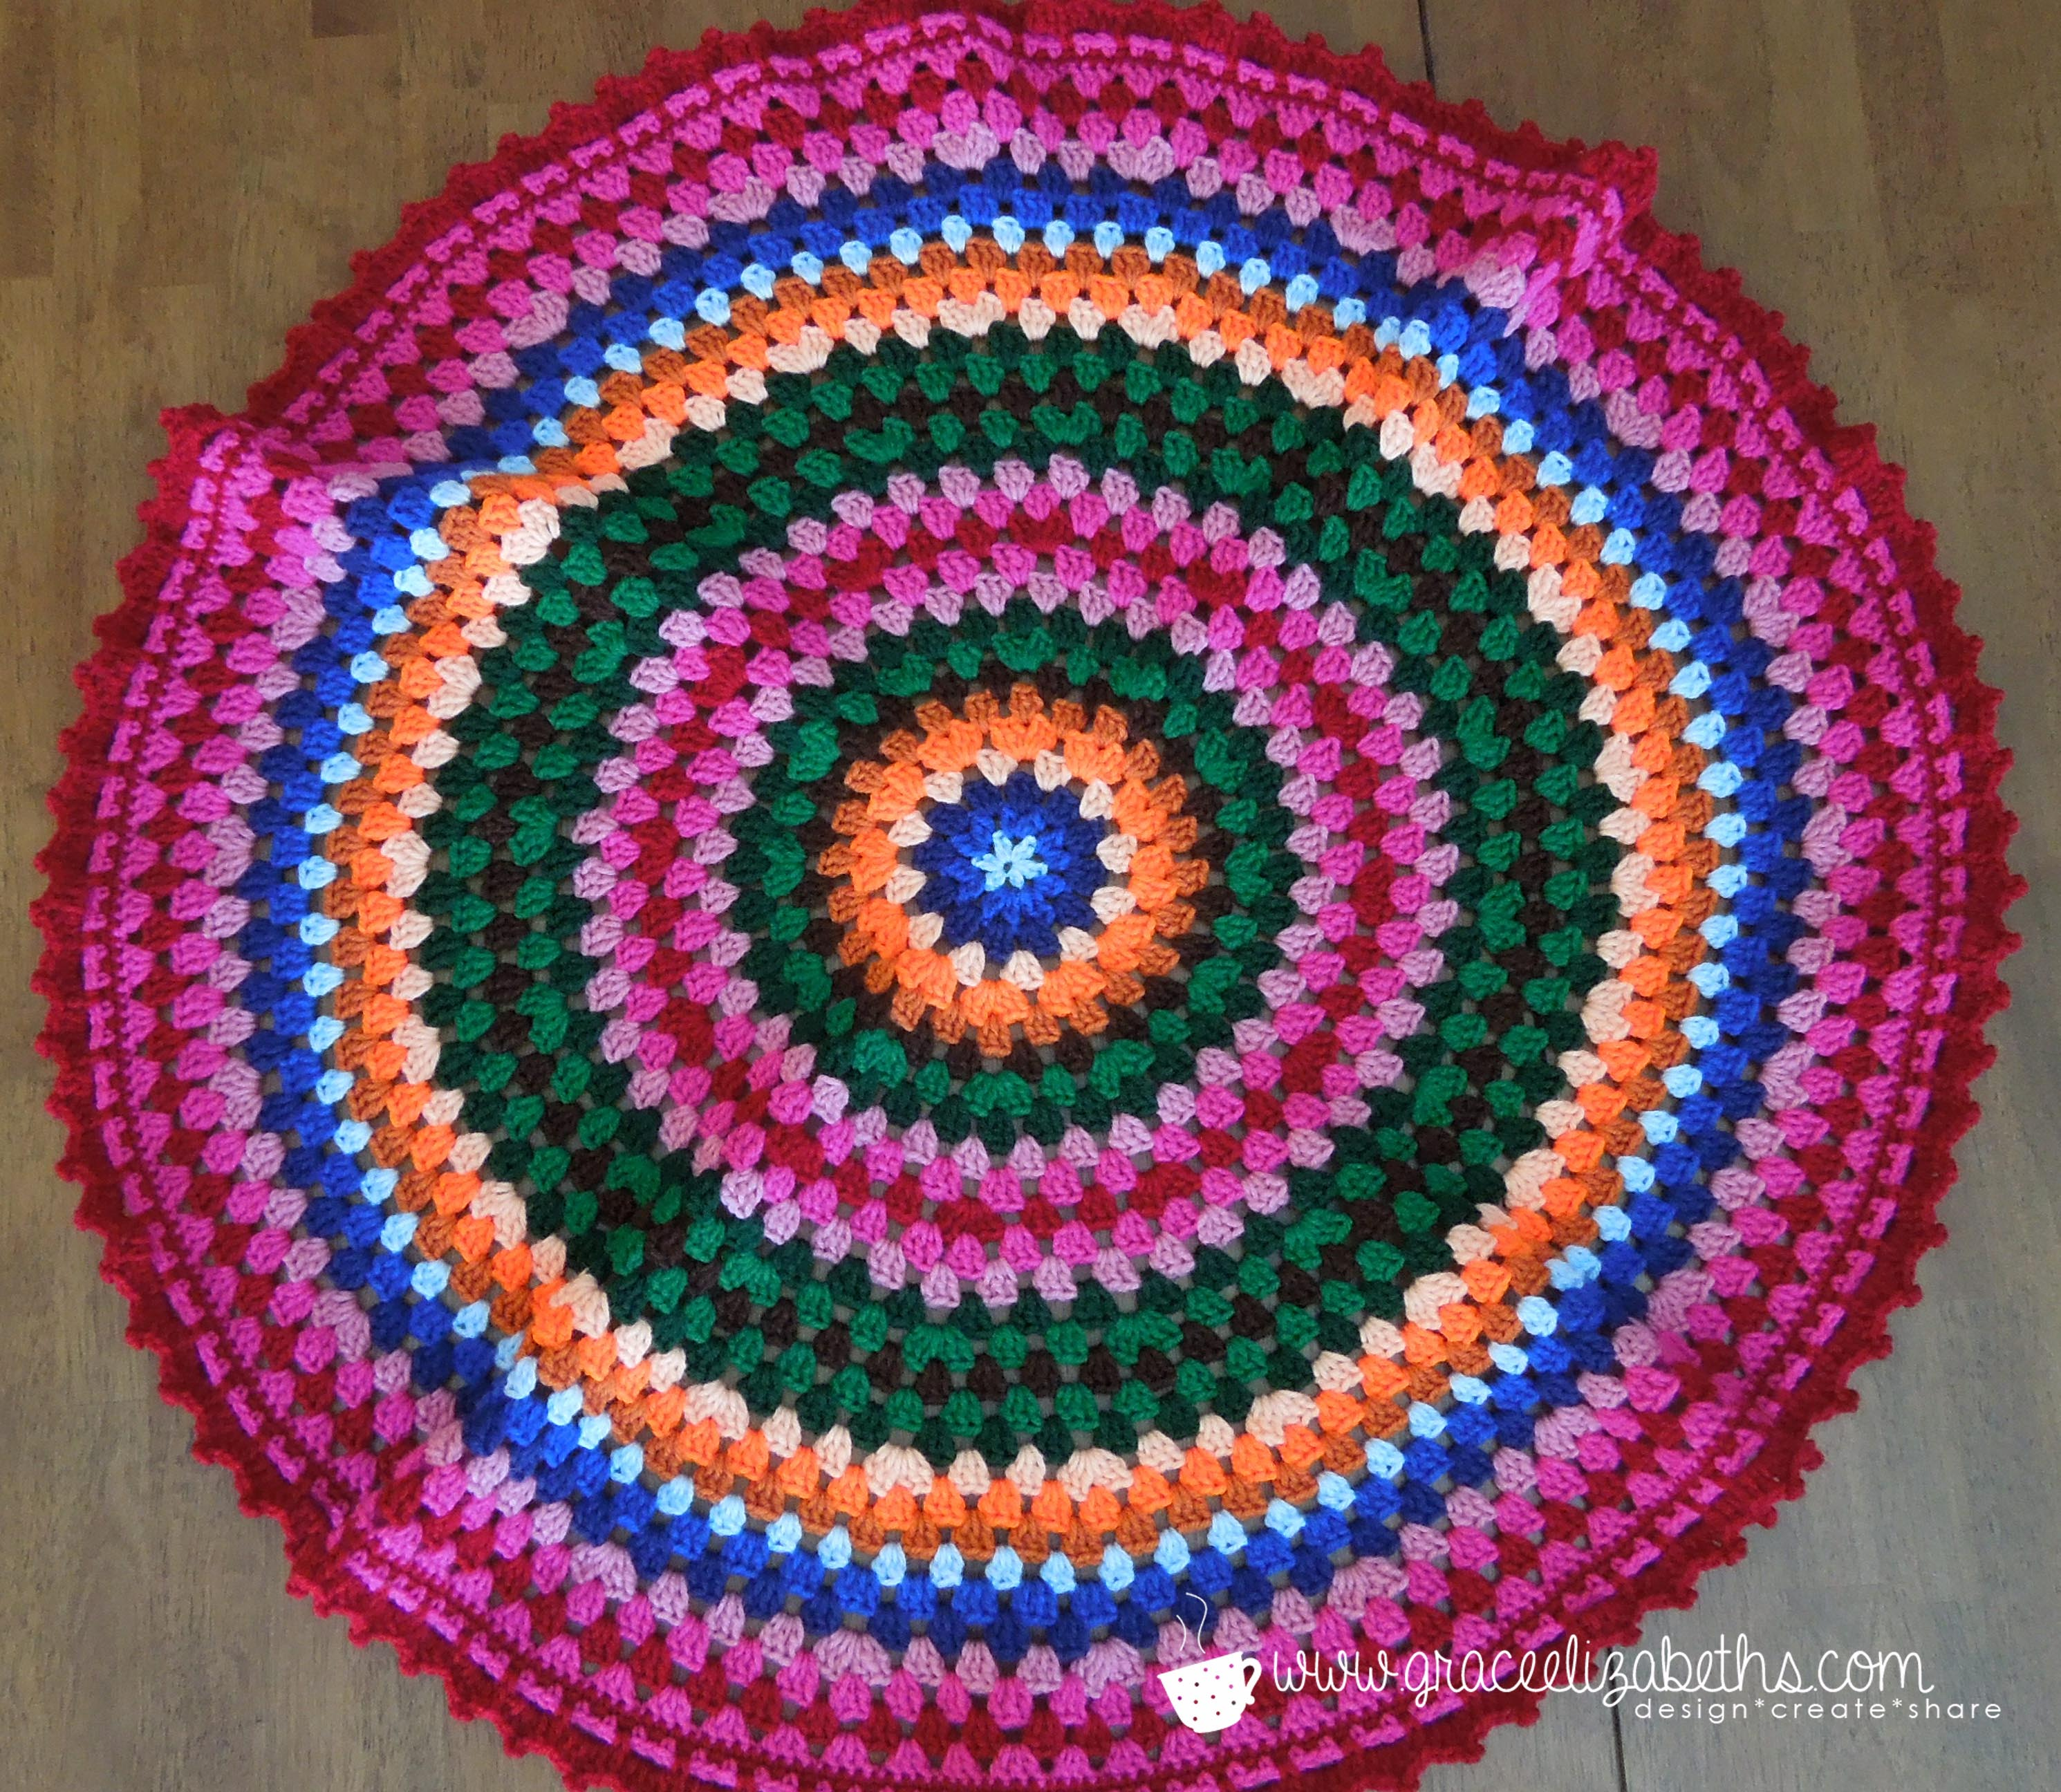 Free Crochet Pattern For Circle Baby Blanket : Crochet Circle Baby Blanket - Grace Elizabeths